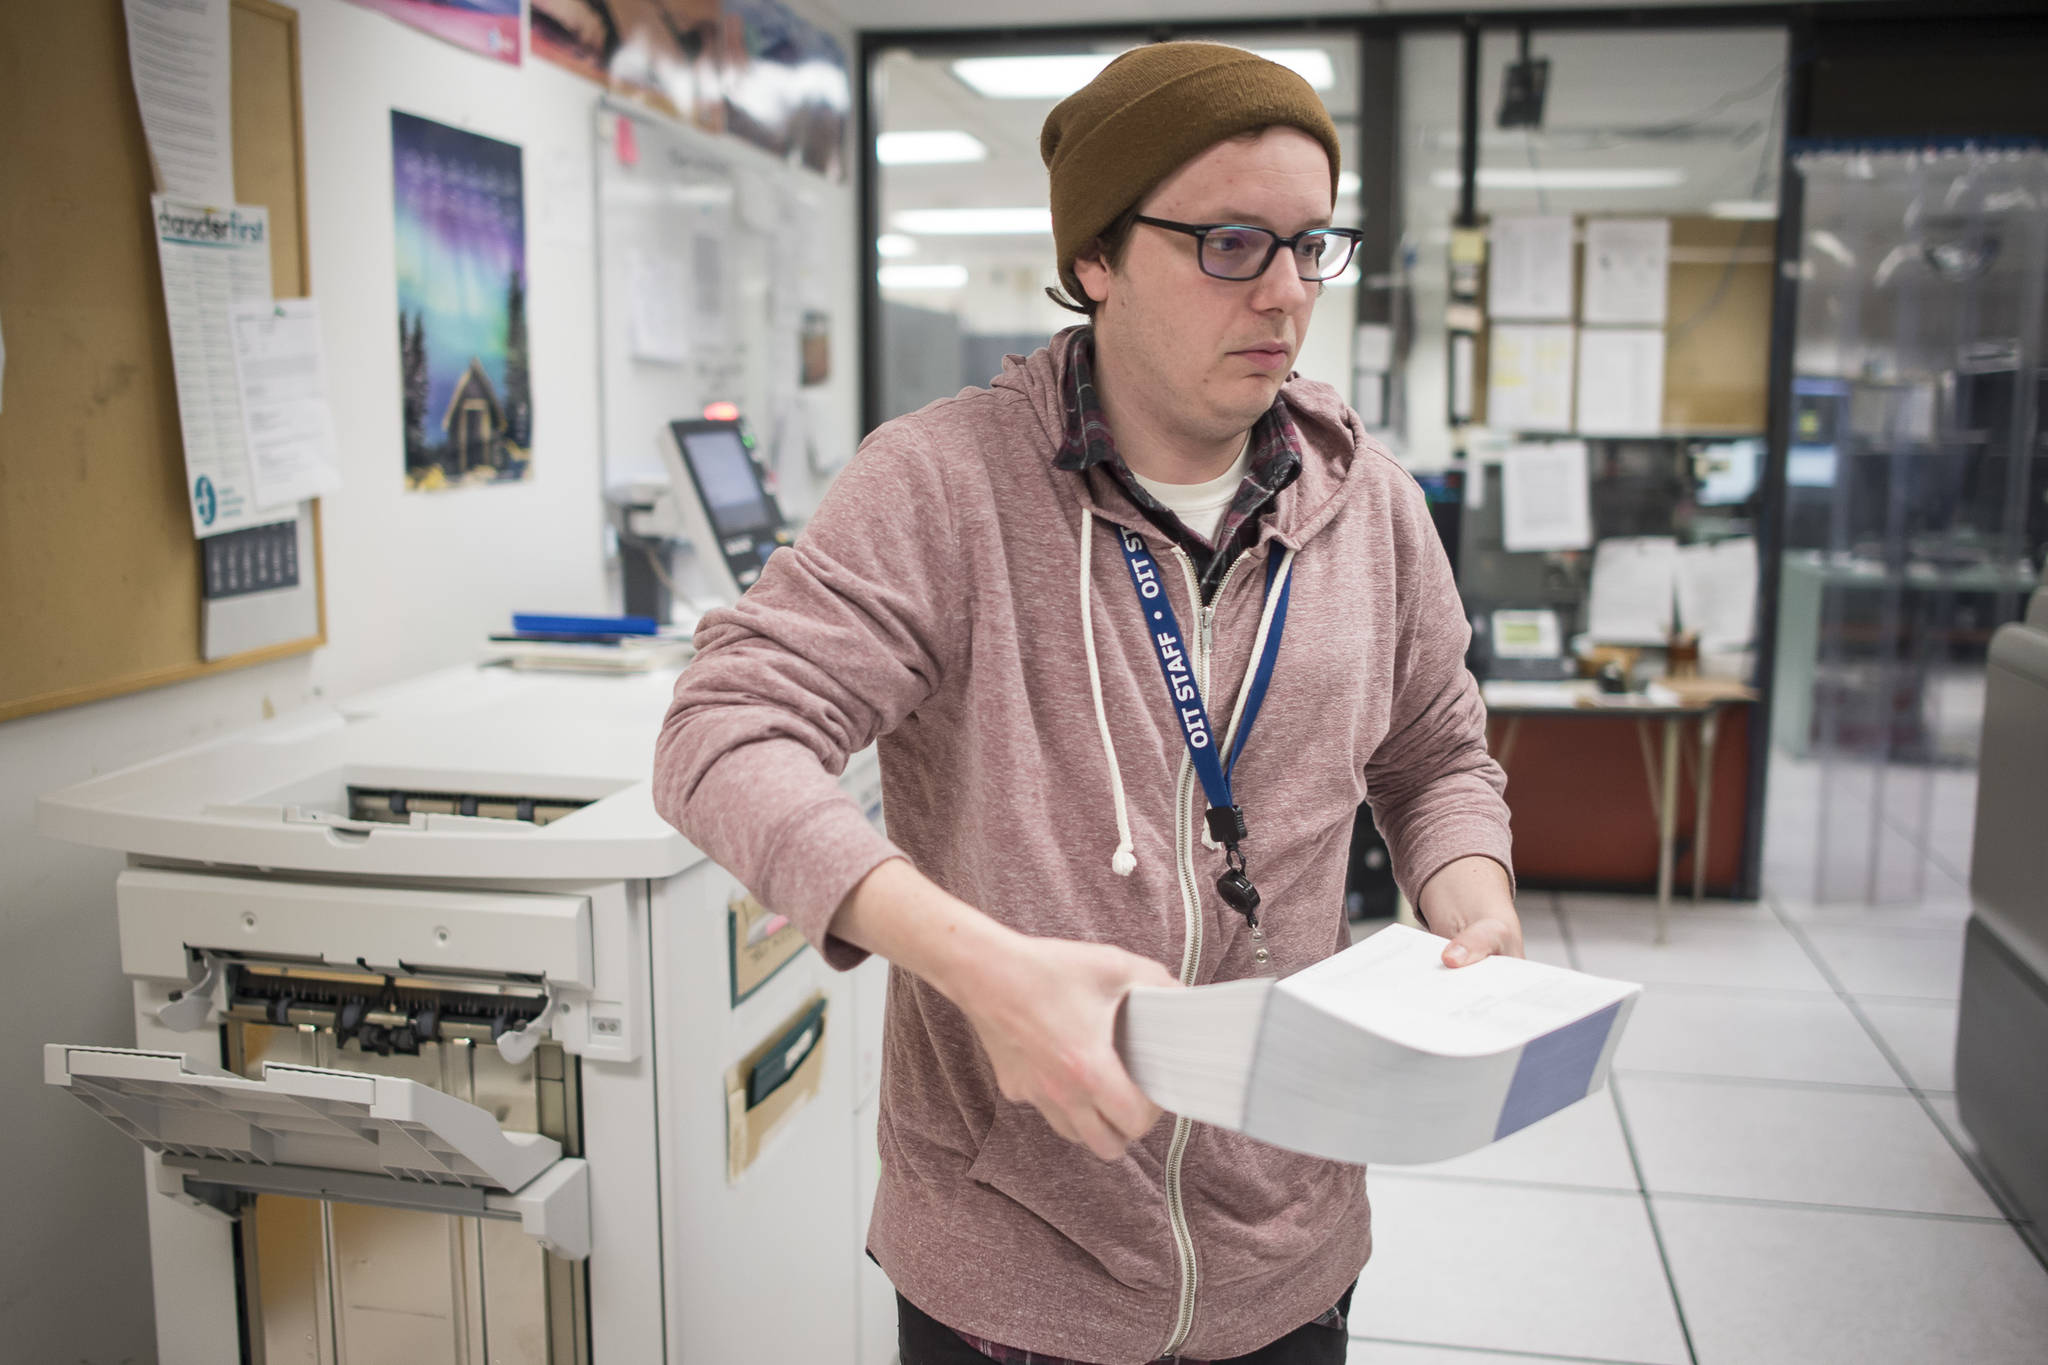 Check it out: Permanent Fund Dividend checks flow from printers this week